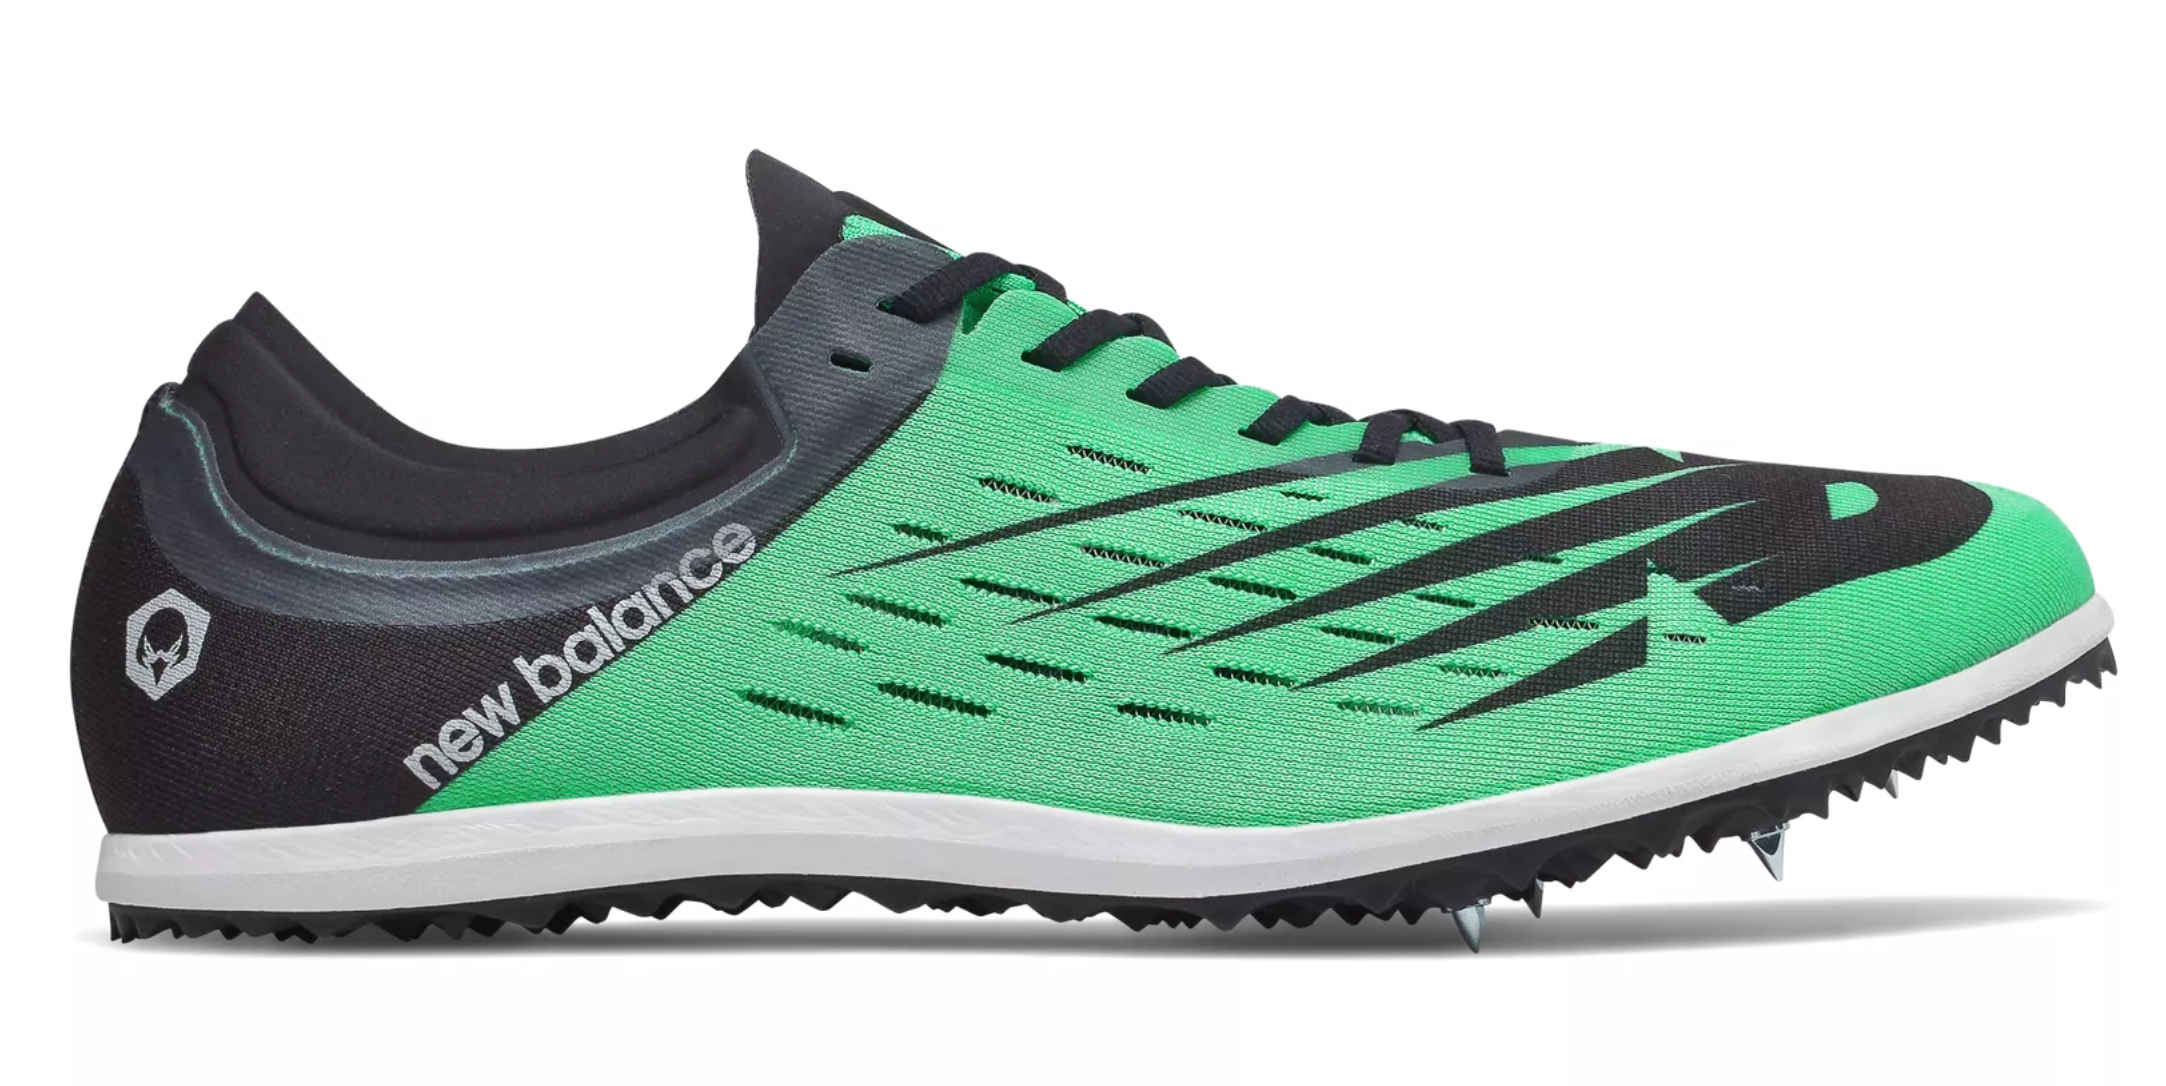 6ff00745cd3 New Balance Running Shoes - 10 Best Running Shoes from New Balance